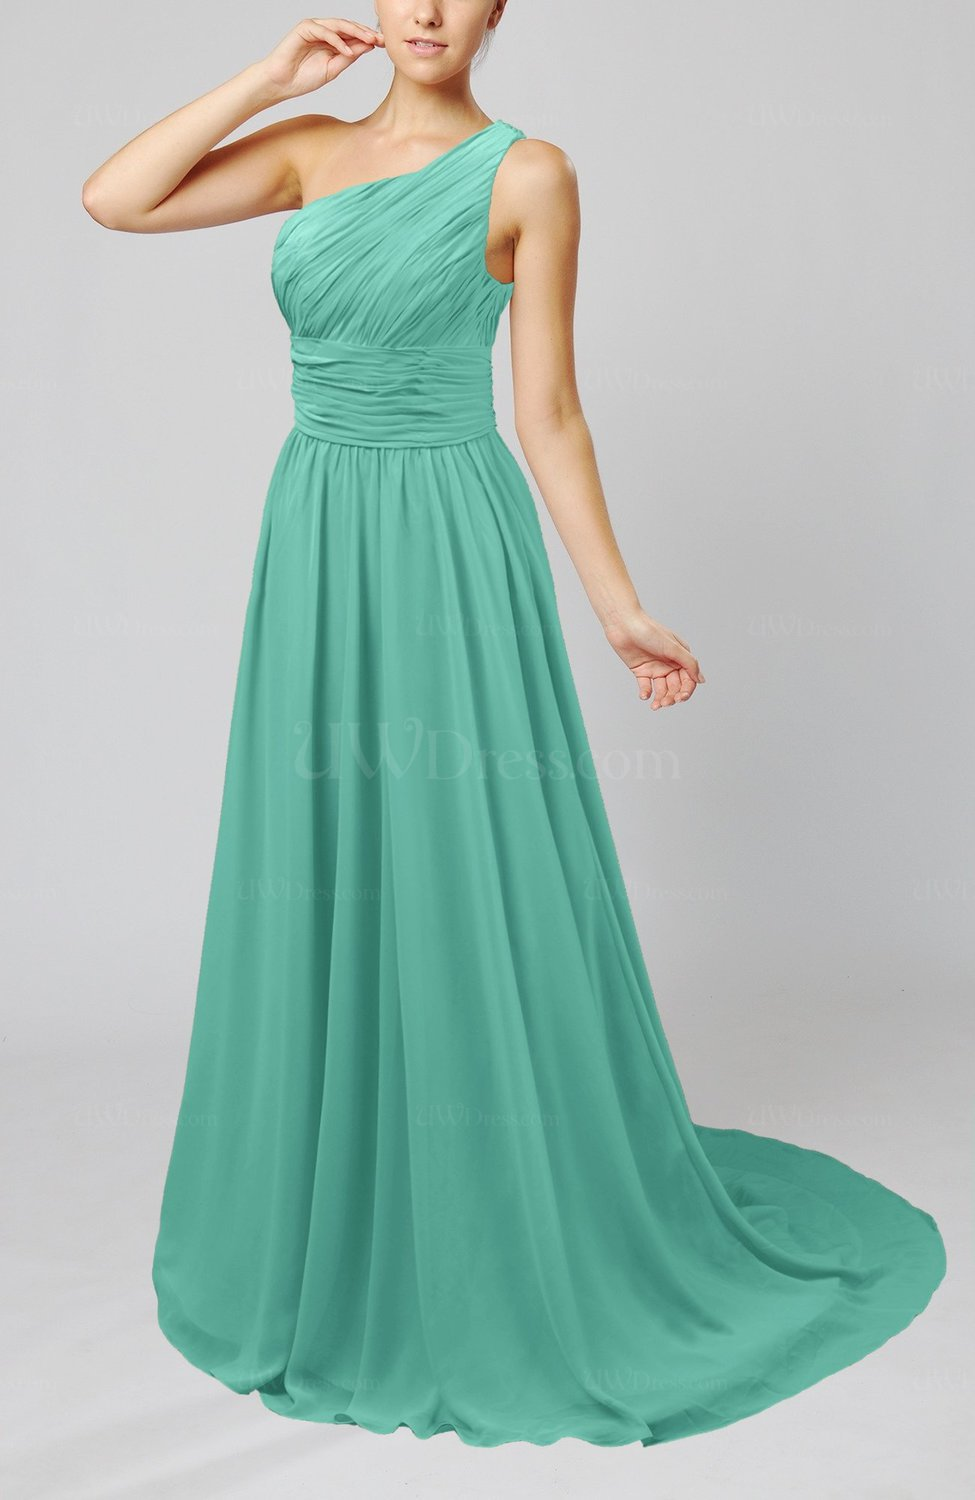 Mint green cinderella asymmetric neckline sleeveless half backless cinderella asymmetric neckline sleeveless half backless court train bridesmaid dresses ombrellifo Image collections